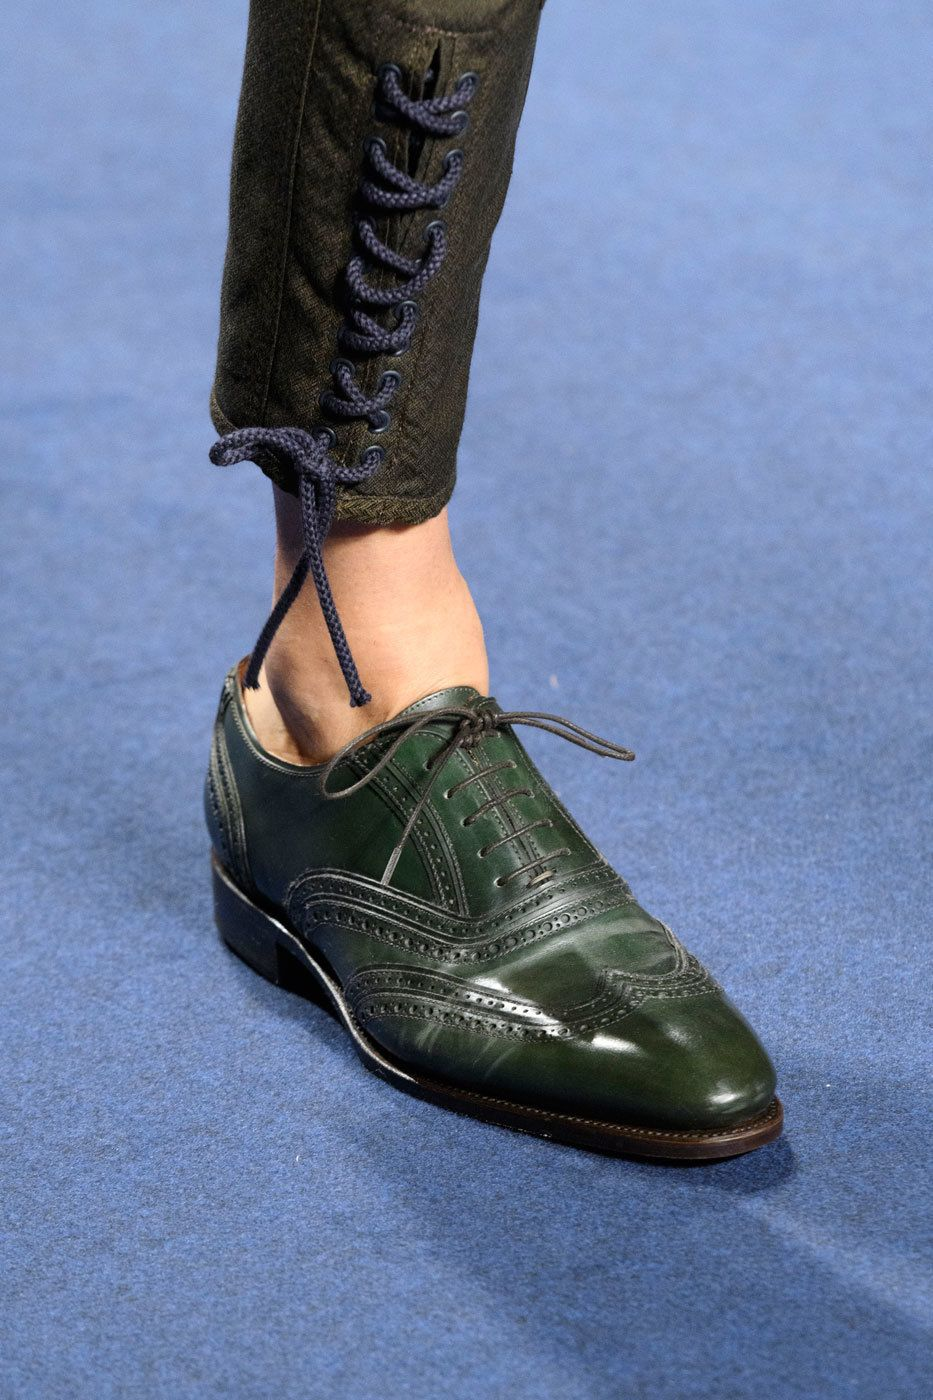 2017 Dalla Week Milano Scarpe Fashion Uomo Estate Primavera pqwWx0Id